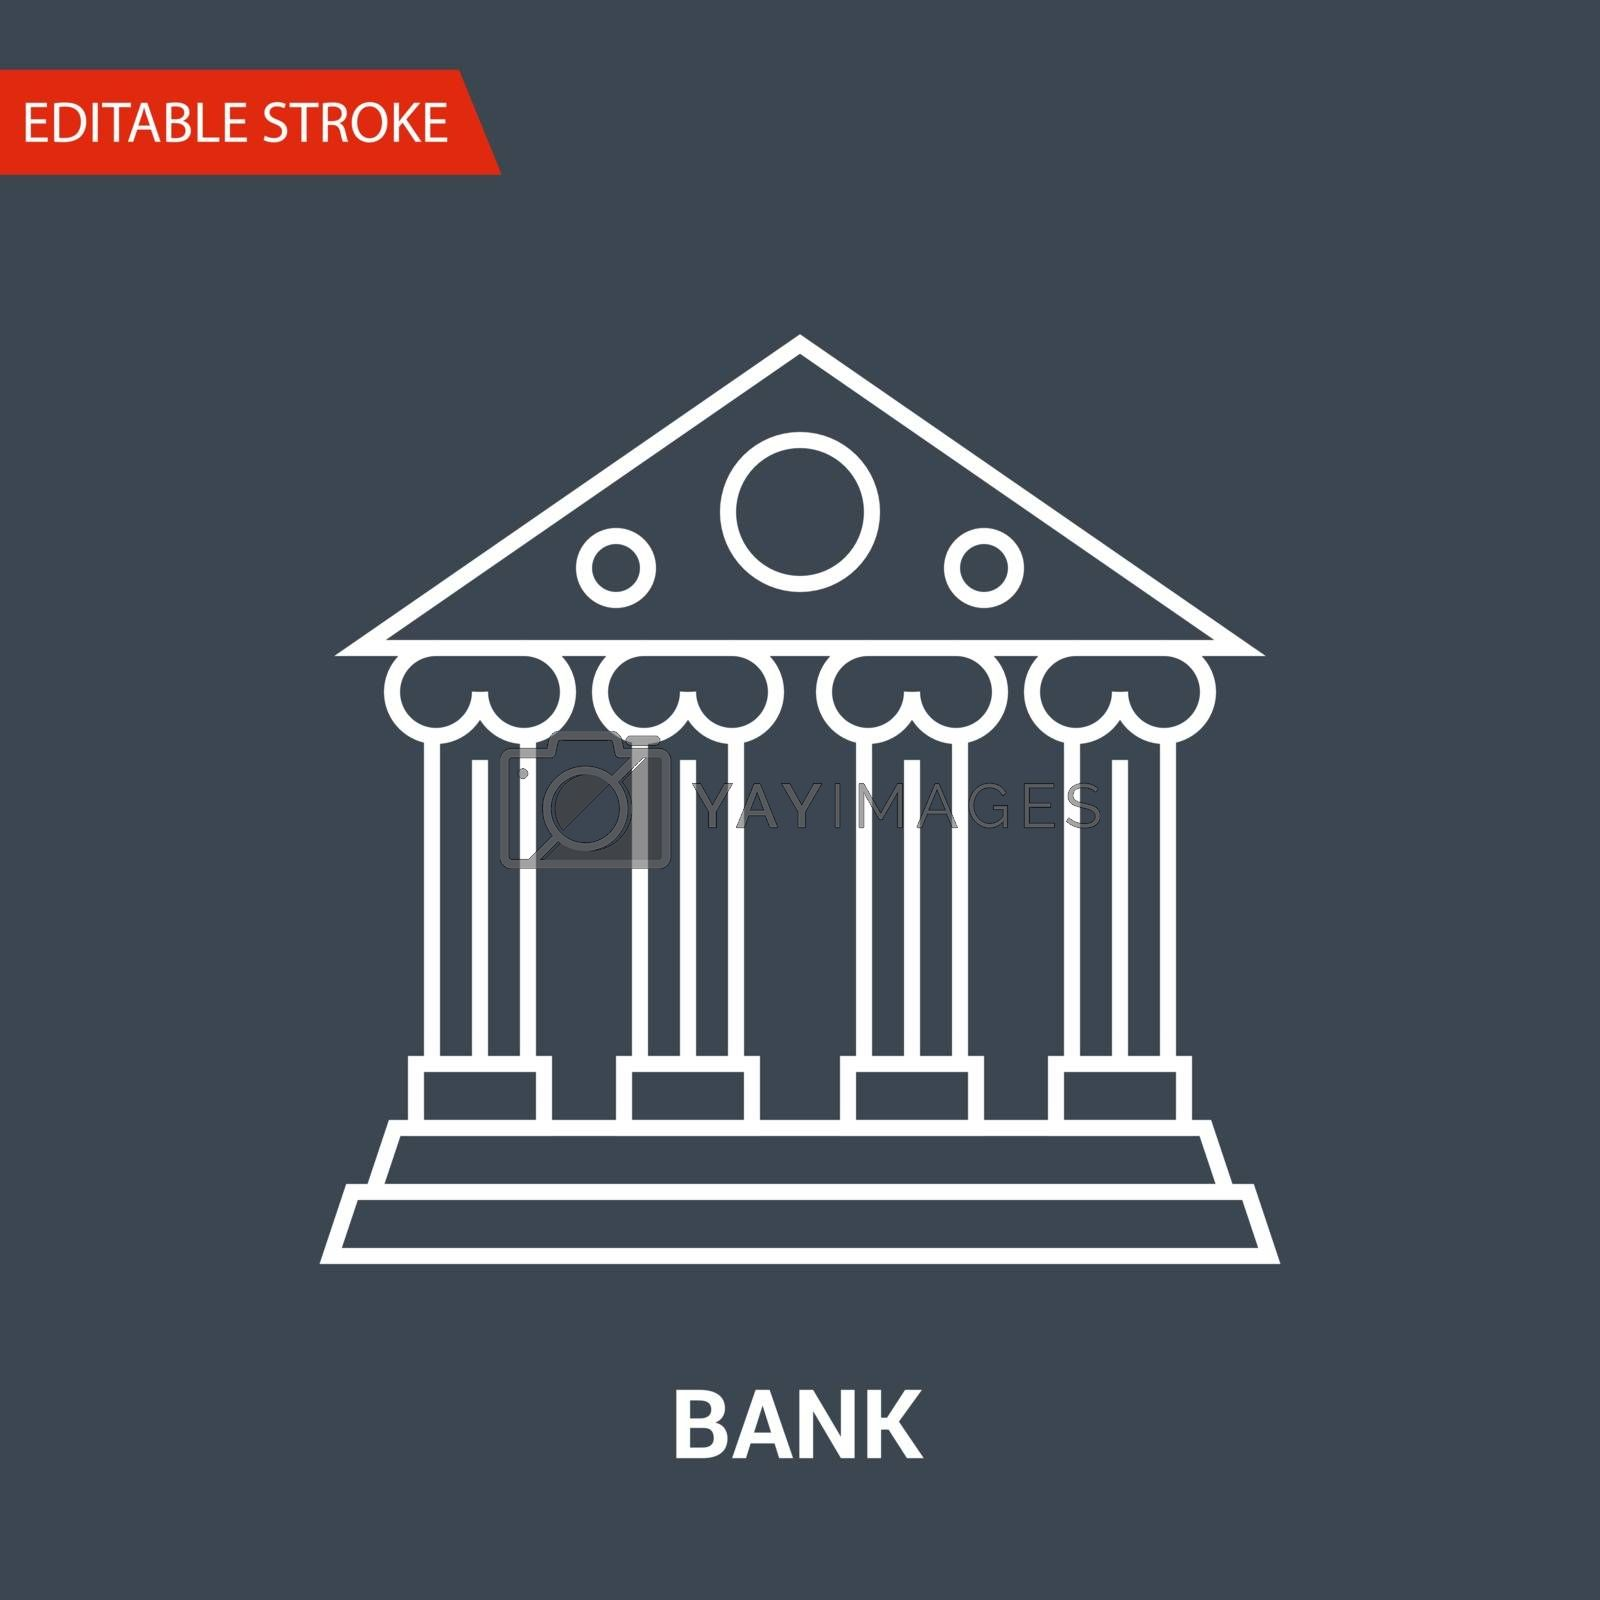 Bank Icon. Thin Line Vector Illustration - Adjust stroke weight - Expand to any Size - Easy Change Colour - Editable Stroke -